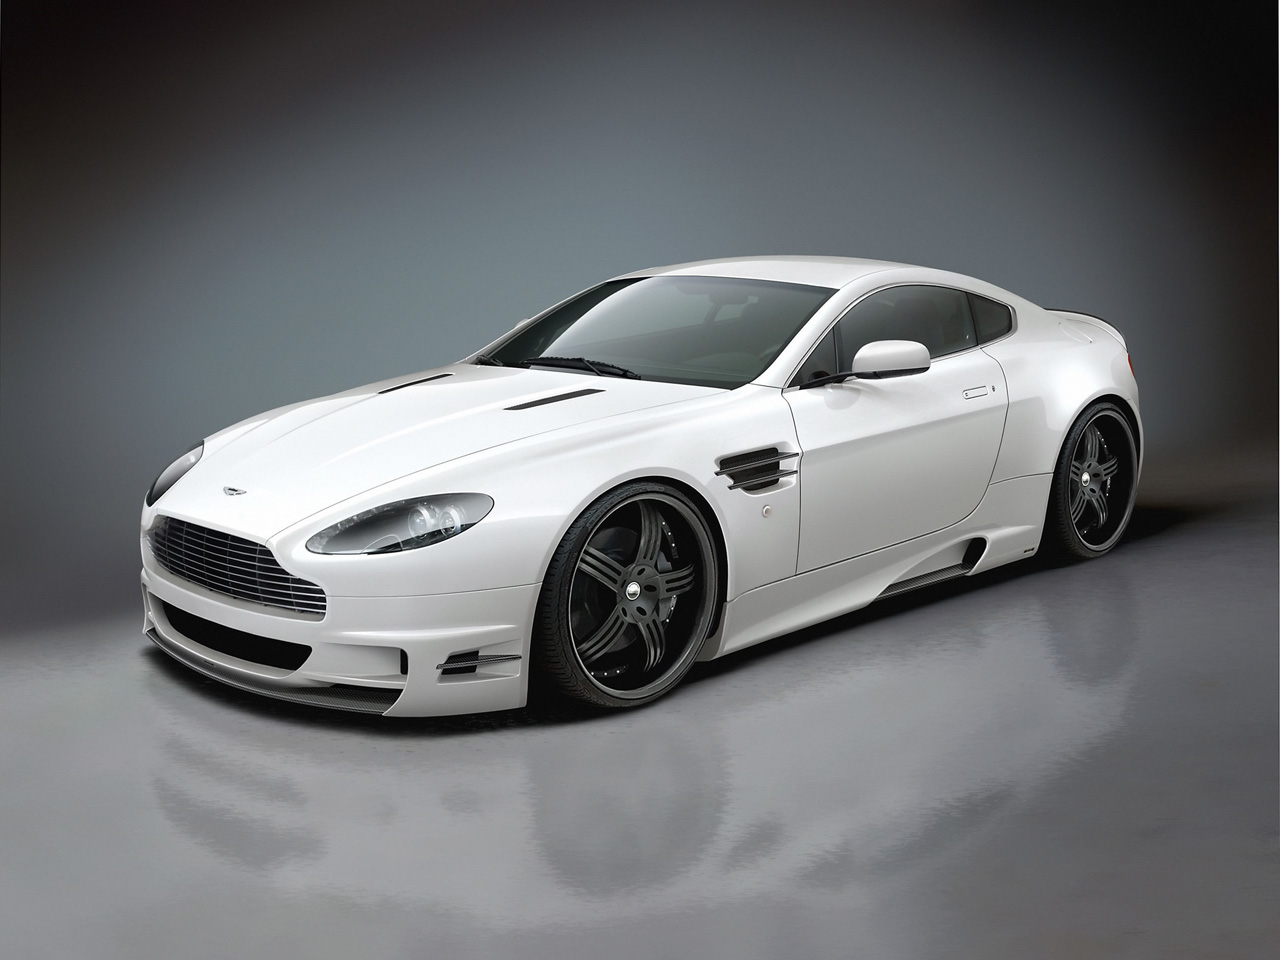 2009 Aston Martin Vantage Wallpapers HD Wallpapers 1280x960